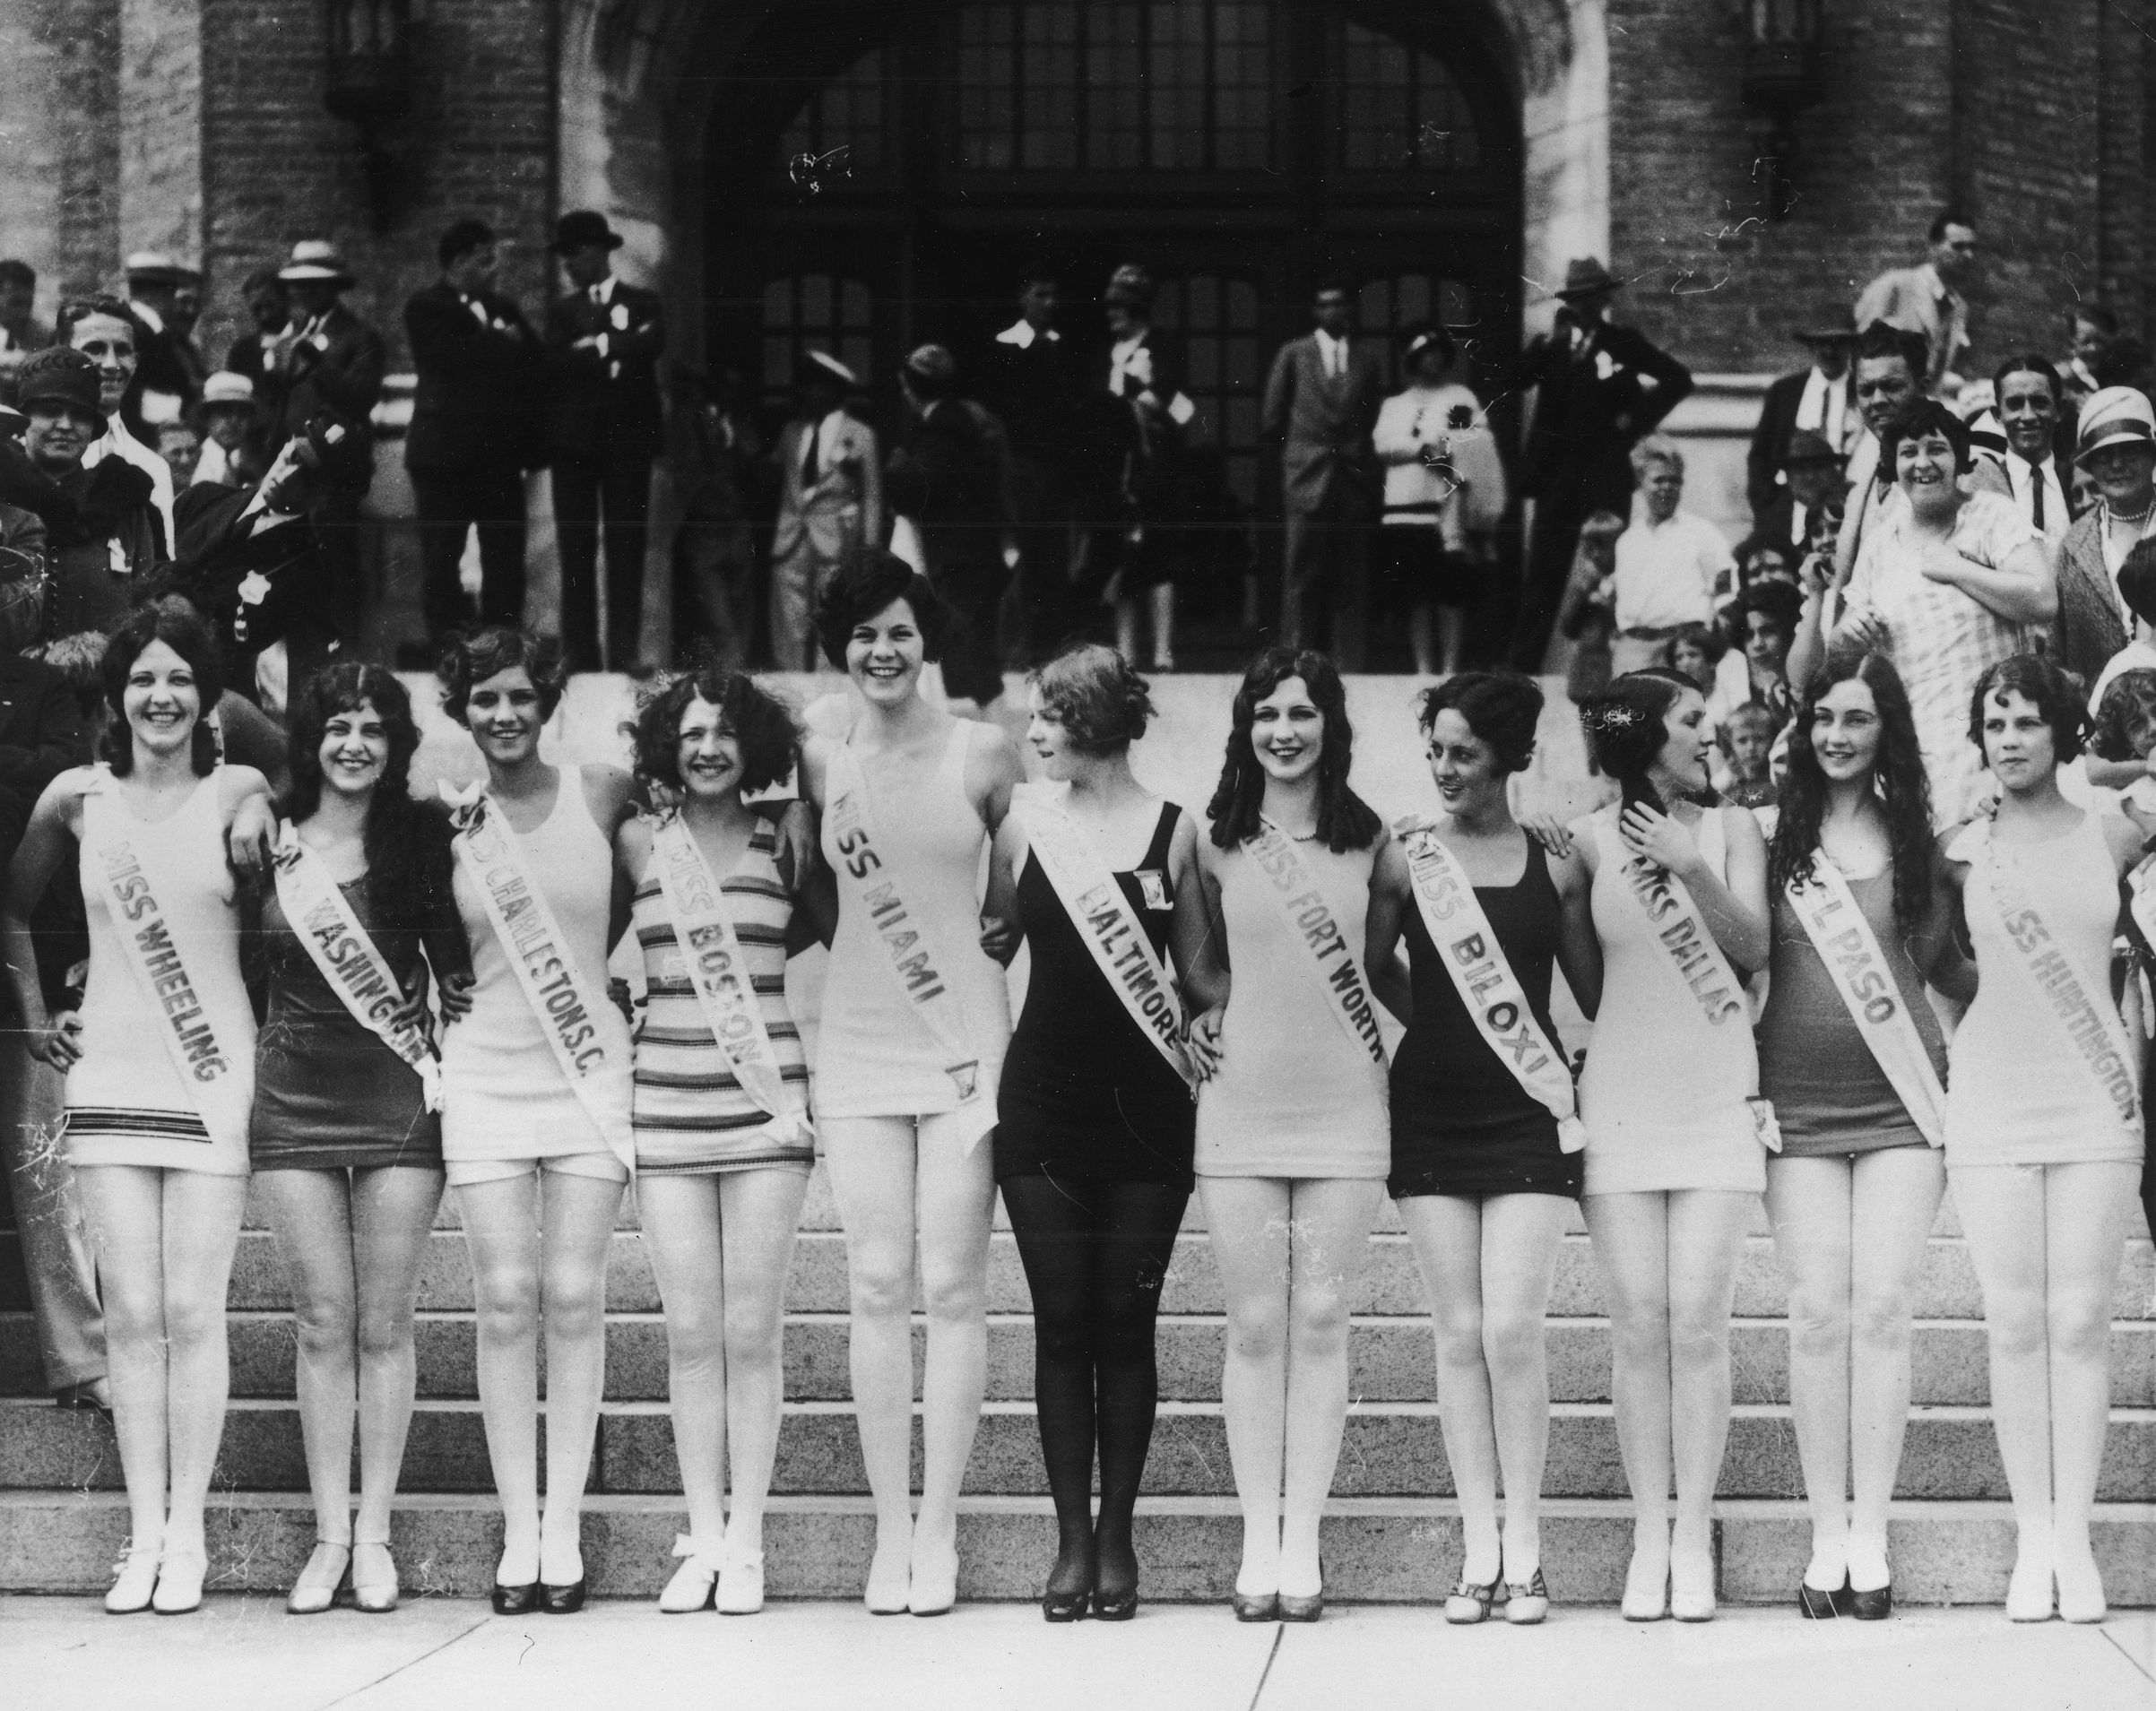 1927: Contestants in the 'Miss America' pageant pose in a line, with their arms around each other, Atlantic City, N.J.